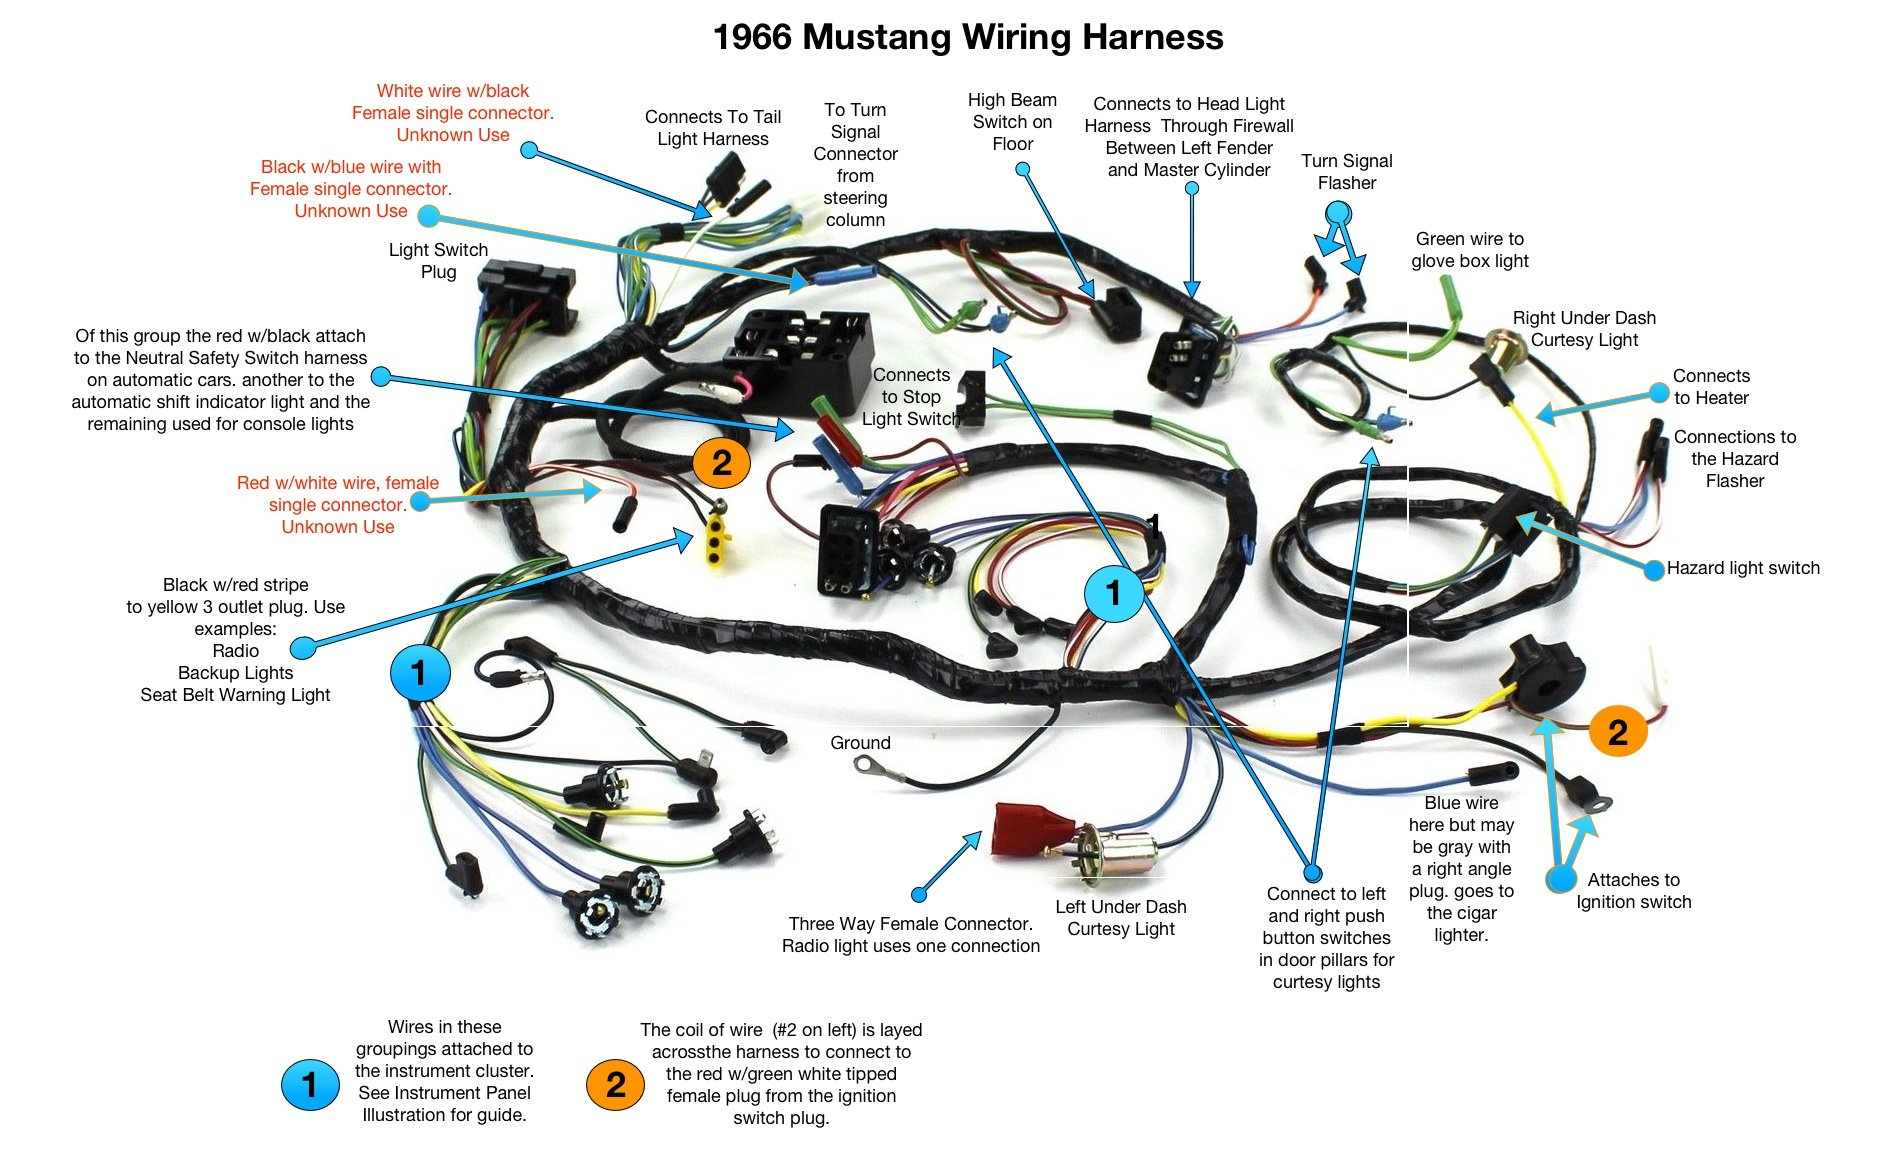 507585d1458686767 66 wiring harness diagram 66 mustang wiring harness harness wiring diagram jeep wrangler wiring harness diagram \u2022 free ford wiring harness connectors at mifinder.co